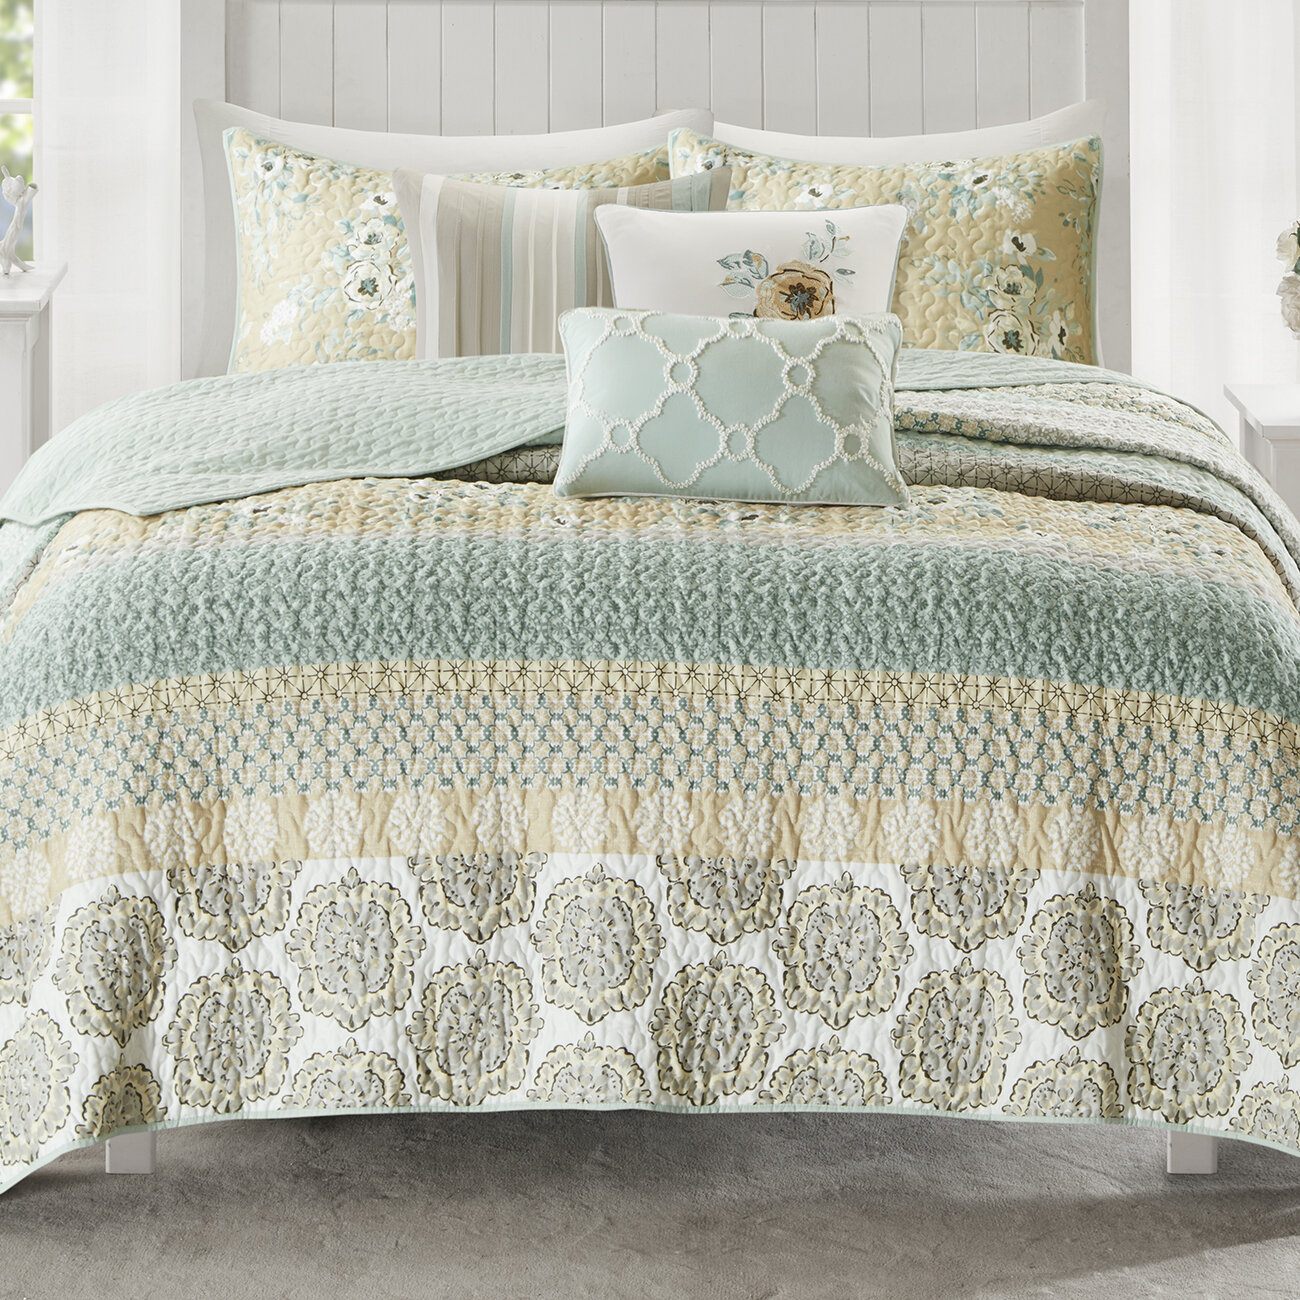 Cotton Blend Machine Washable Quilts Coverlets Sets You Ll Love In 2021 Wayfair